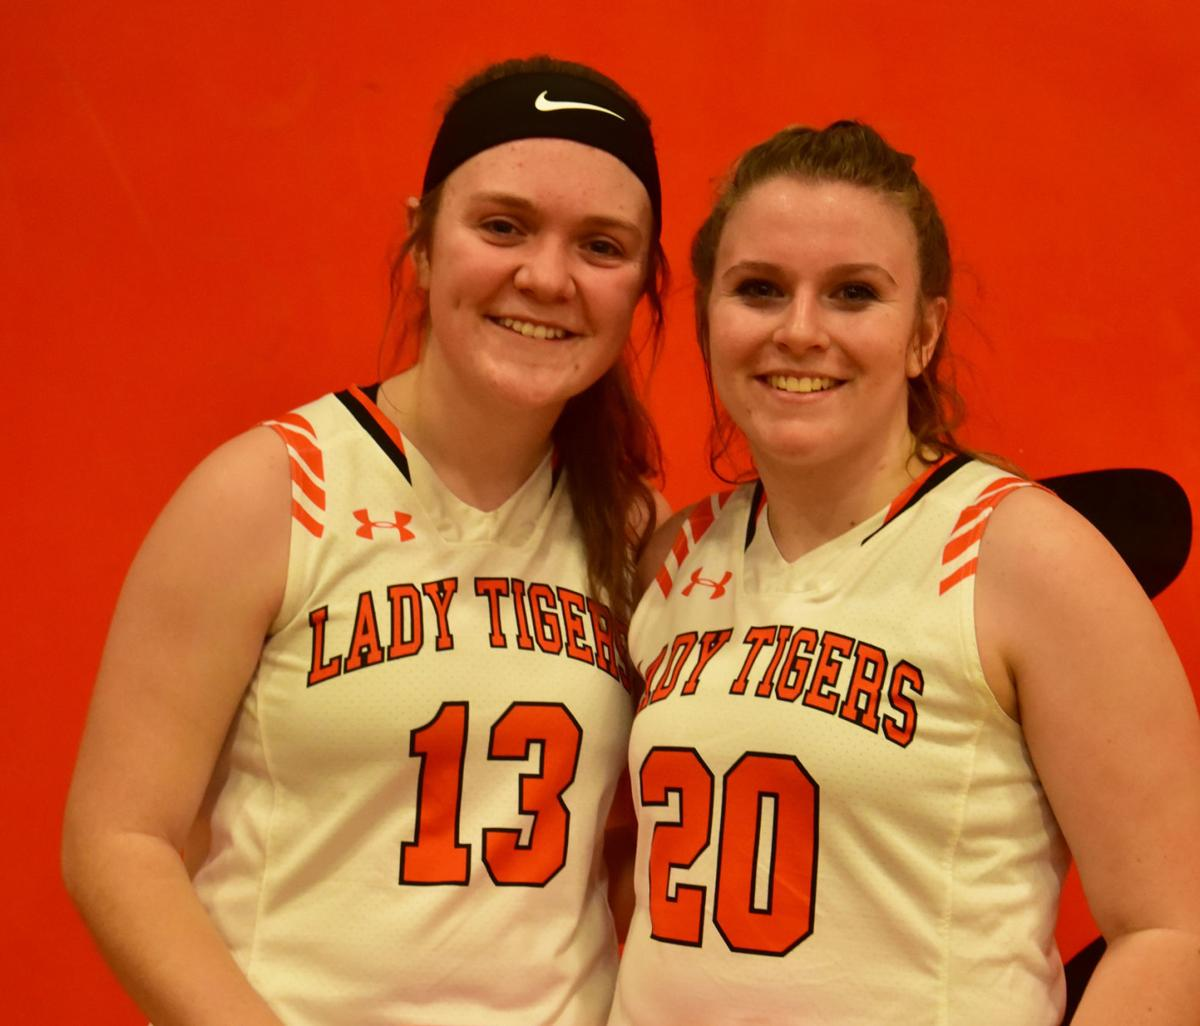 Jessie Evans and Cara Parsell